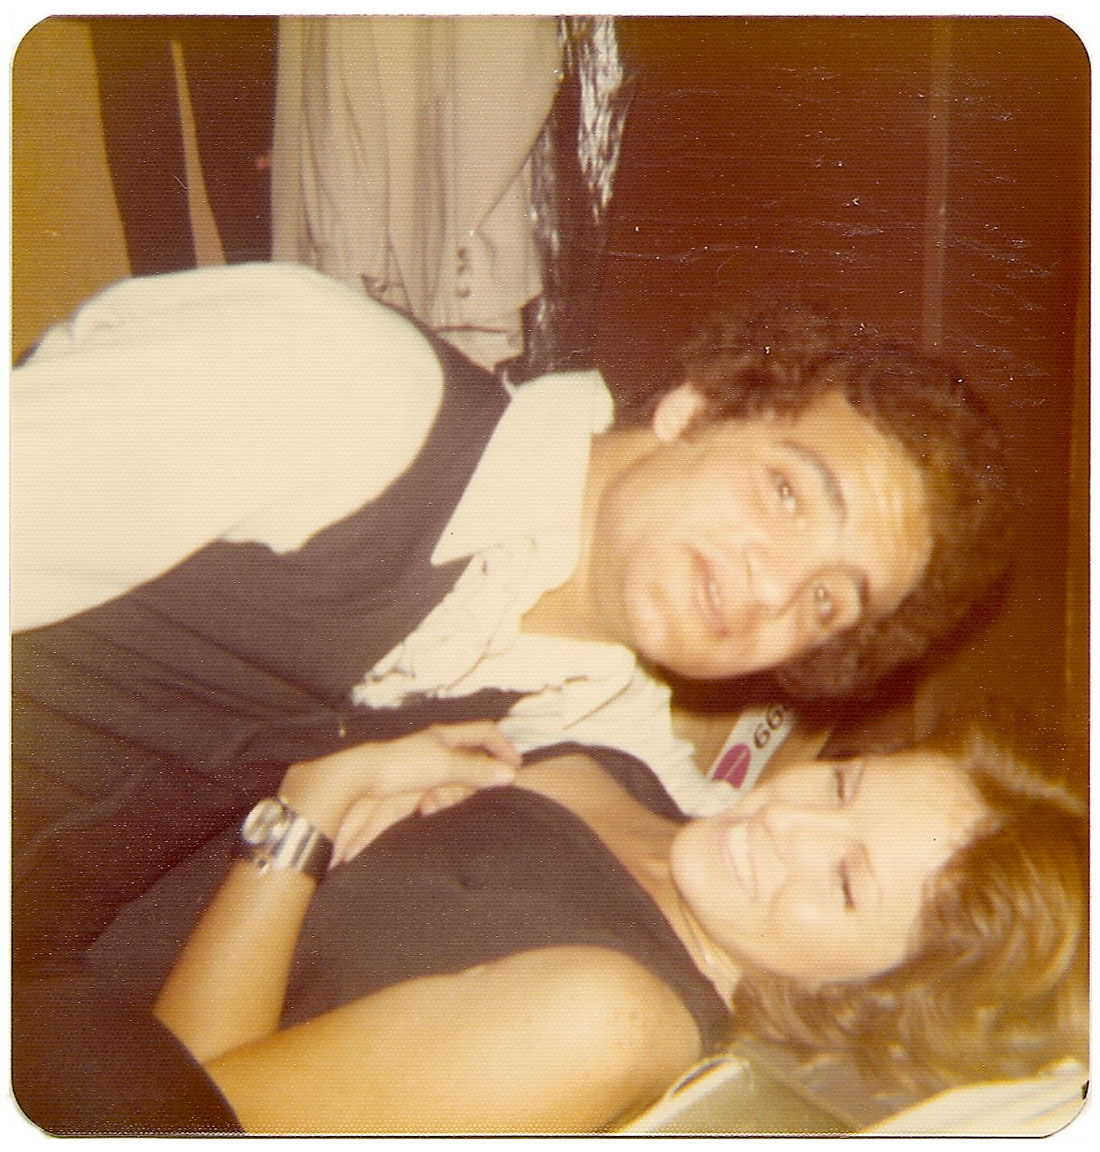 Alfredo Perez and Lina Argulelles backstage at Mr. Pip's.